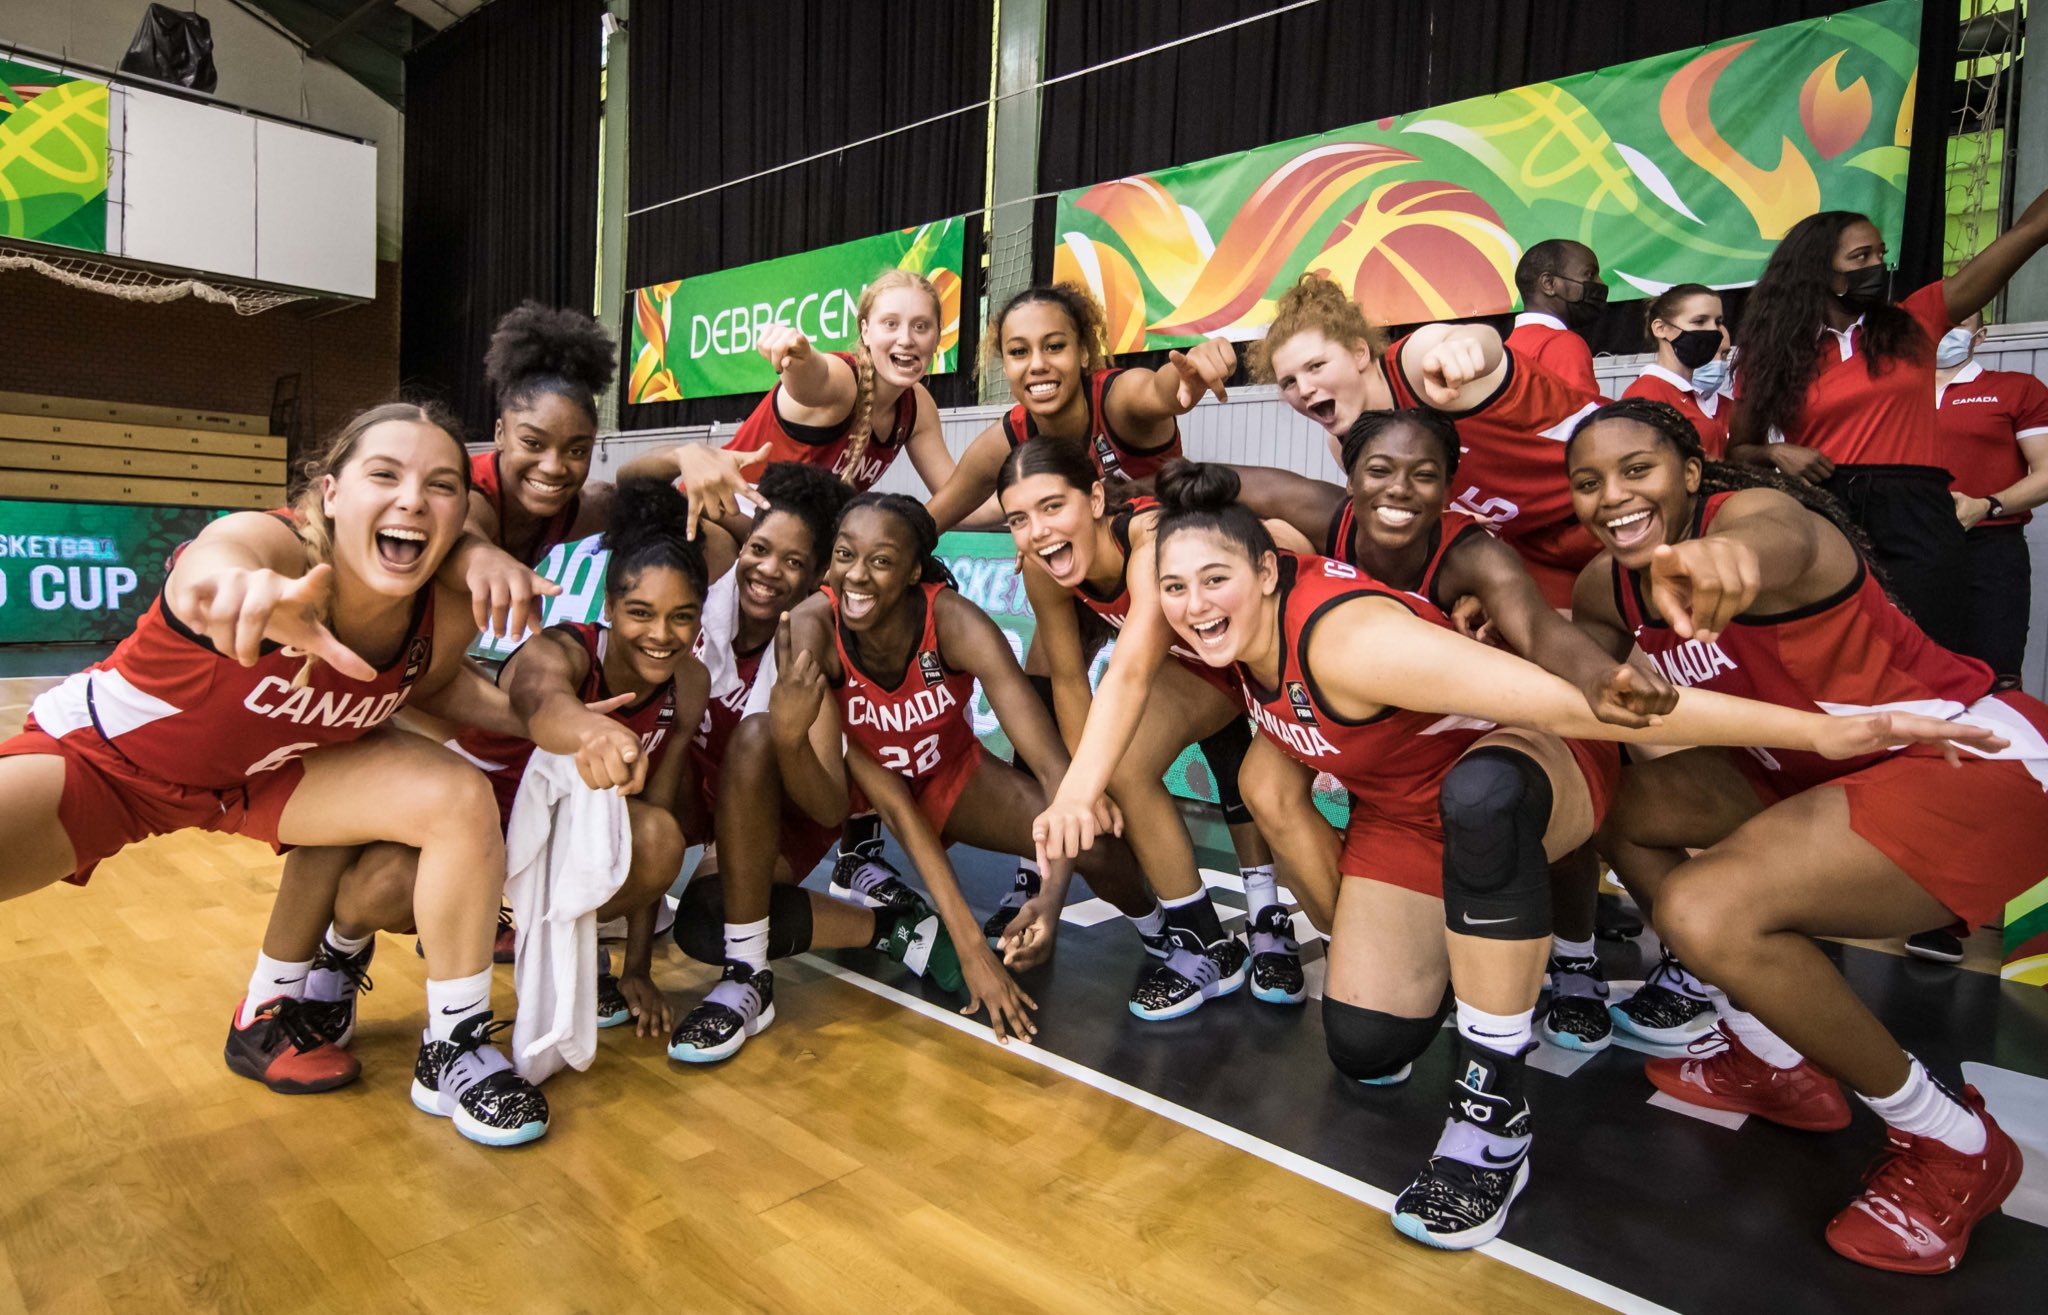 Canada upsets strong France squad 79-72 at FIBA U19 Worlds to advance to quarterfinals